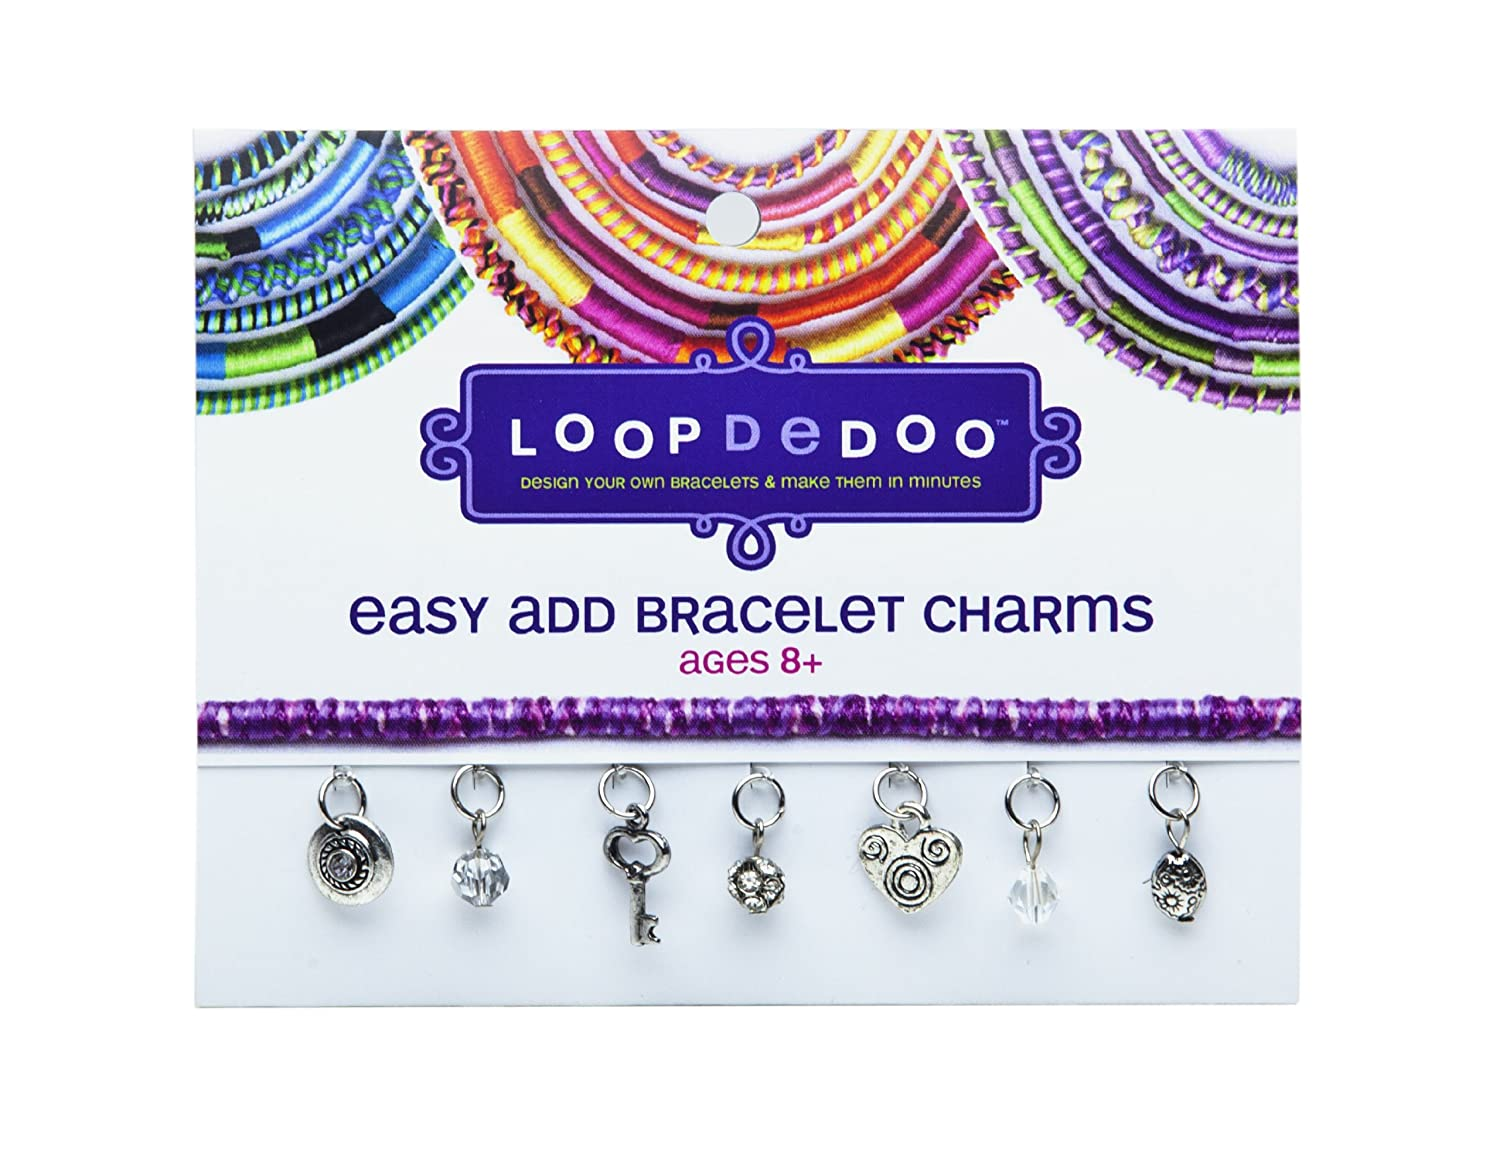 amazoncom loopdedoo easy add bracelet charms key to my heart toys u0026 games